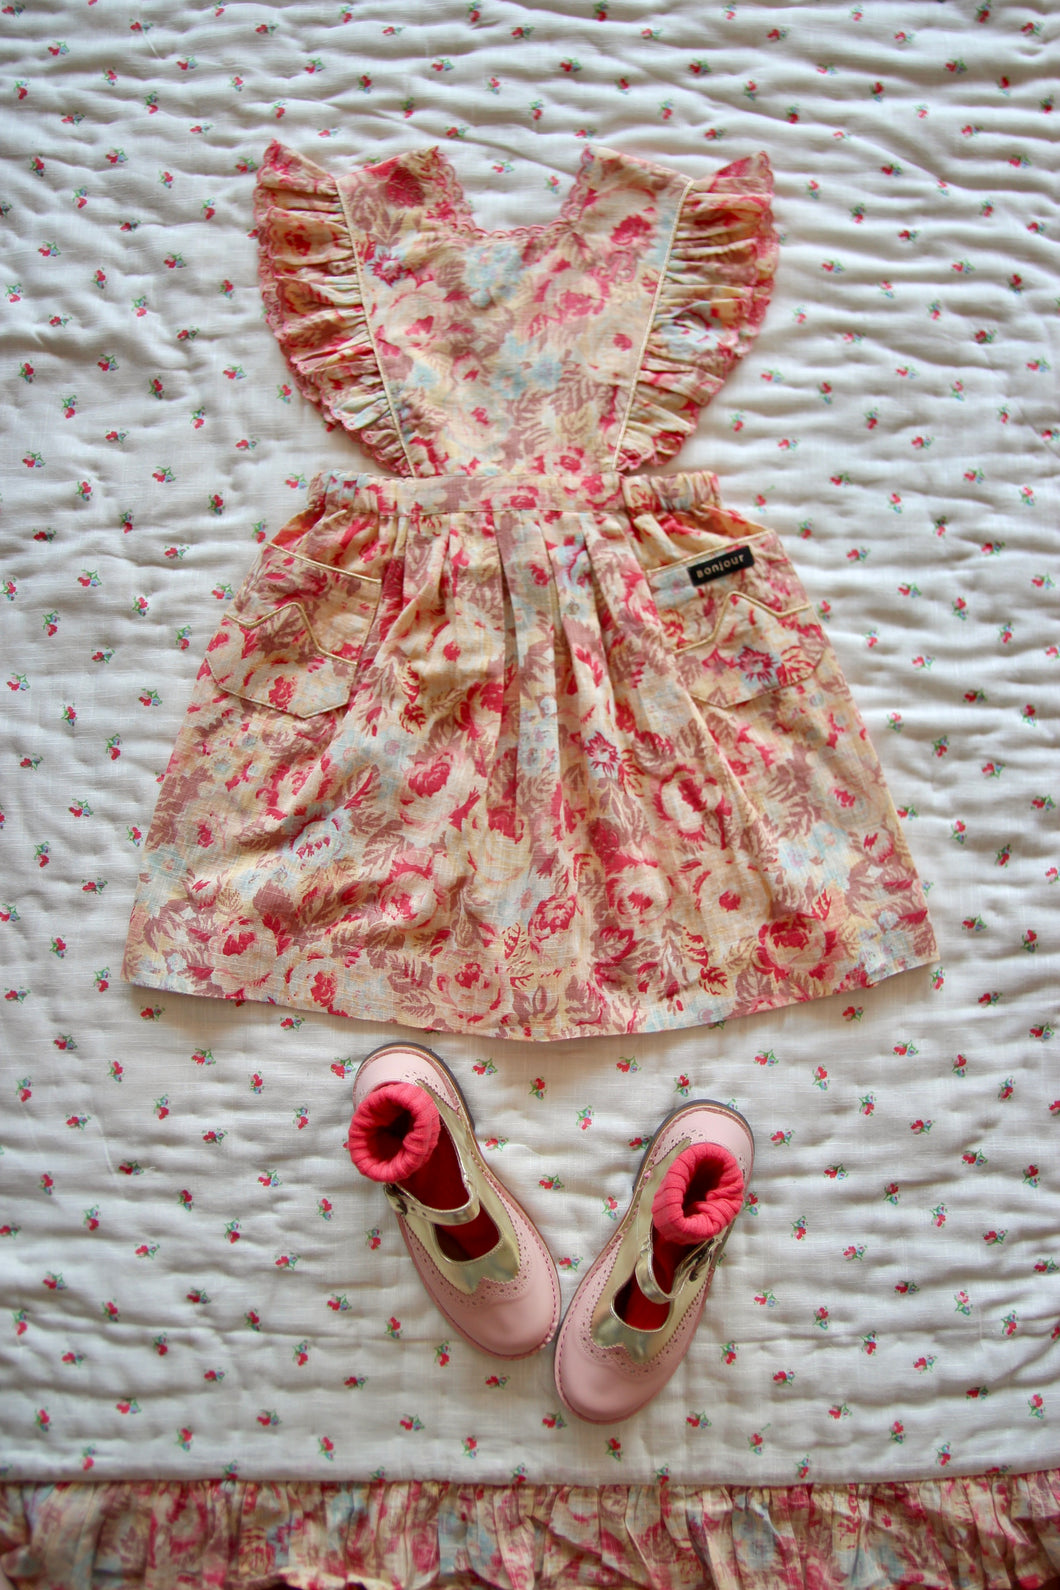 APRON DRESS | FADED ROSE PRINT